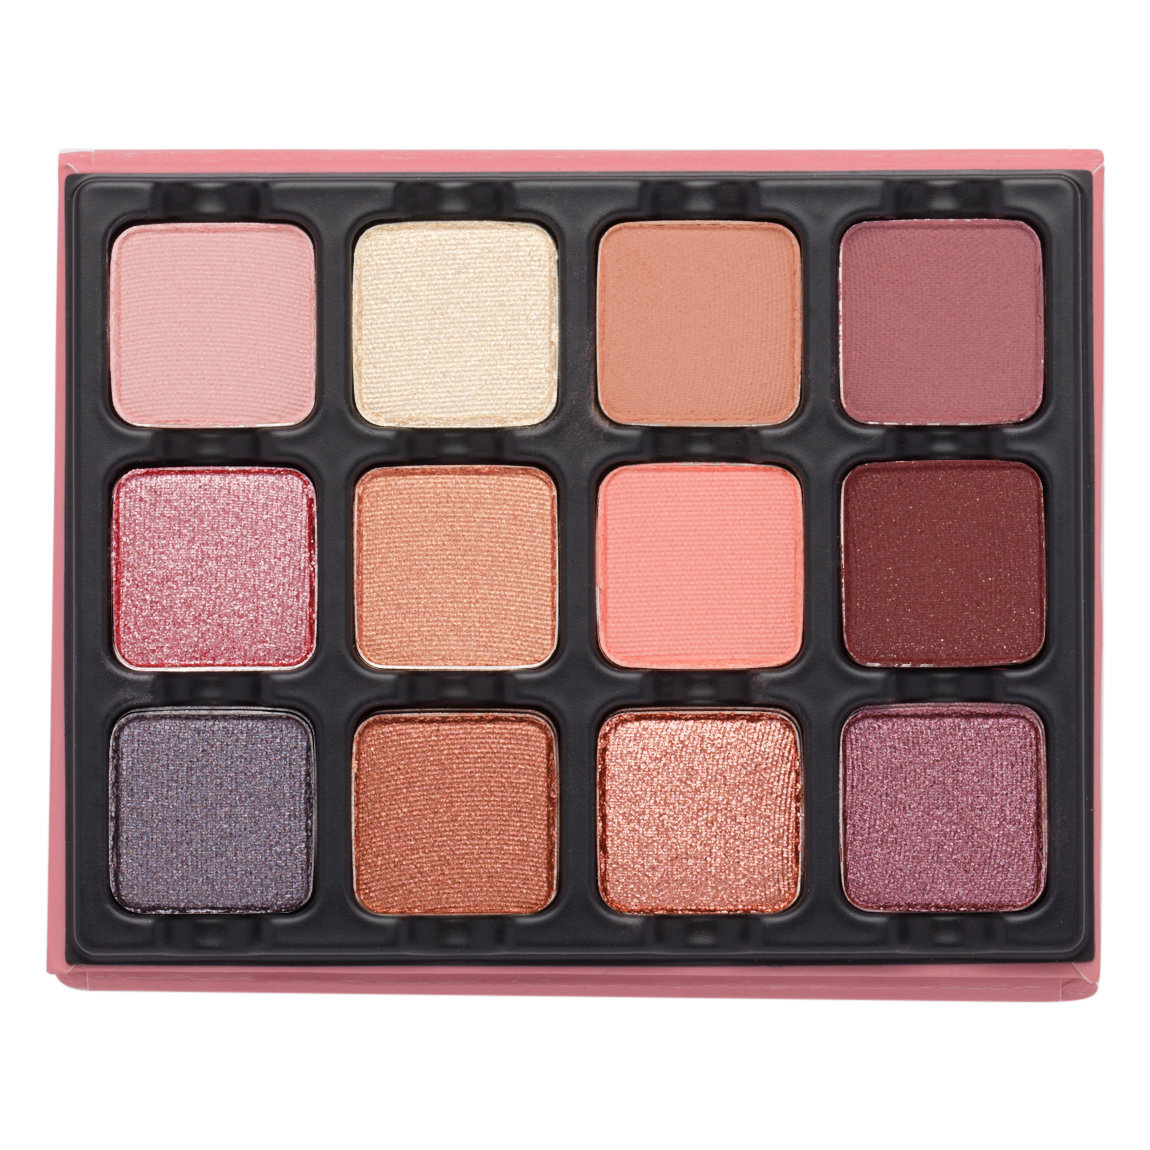 Viseart Paris EDIT Eye Shadow Palette alternative view 1 - product swatch.